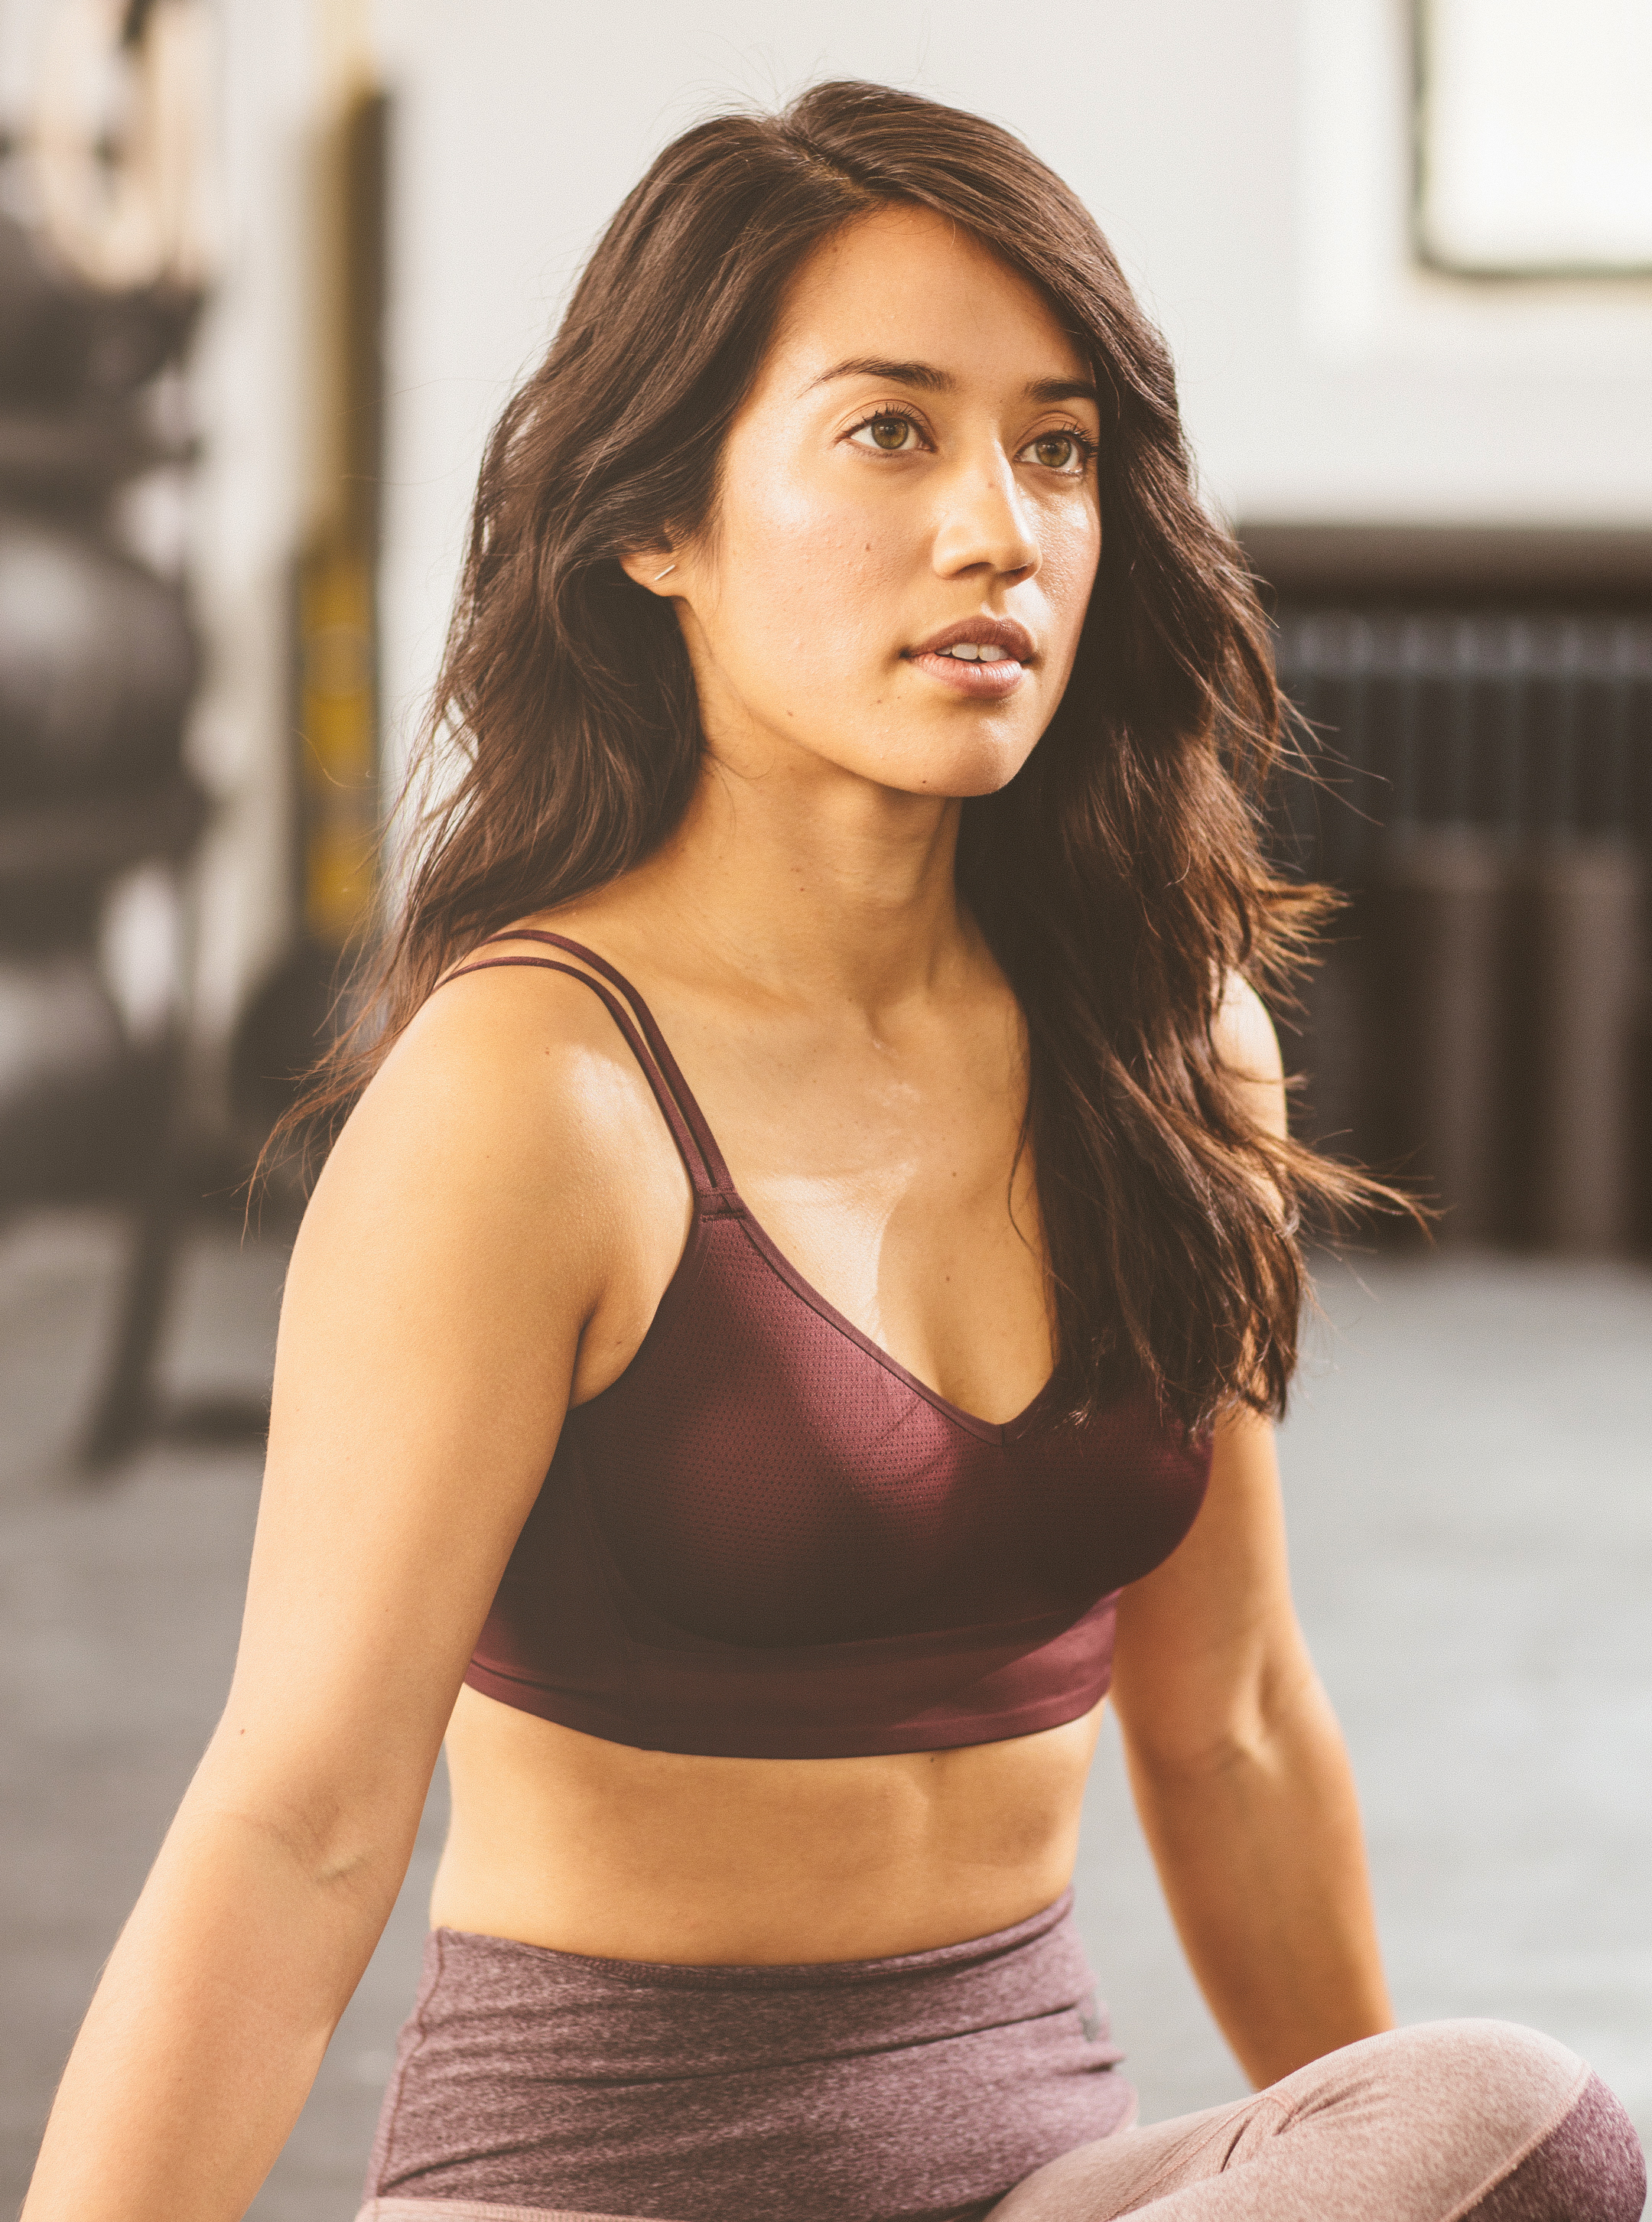 SWEAT WITH STEPH - Don't let her sweet smile fool you, Steph's Power Yoga classes will make you sweat, and her deep Yin can only be described as intense!